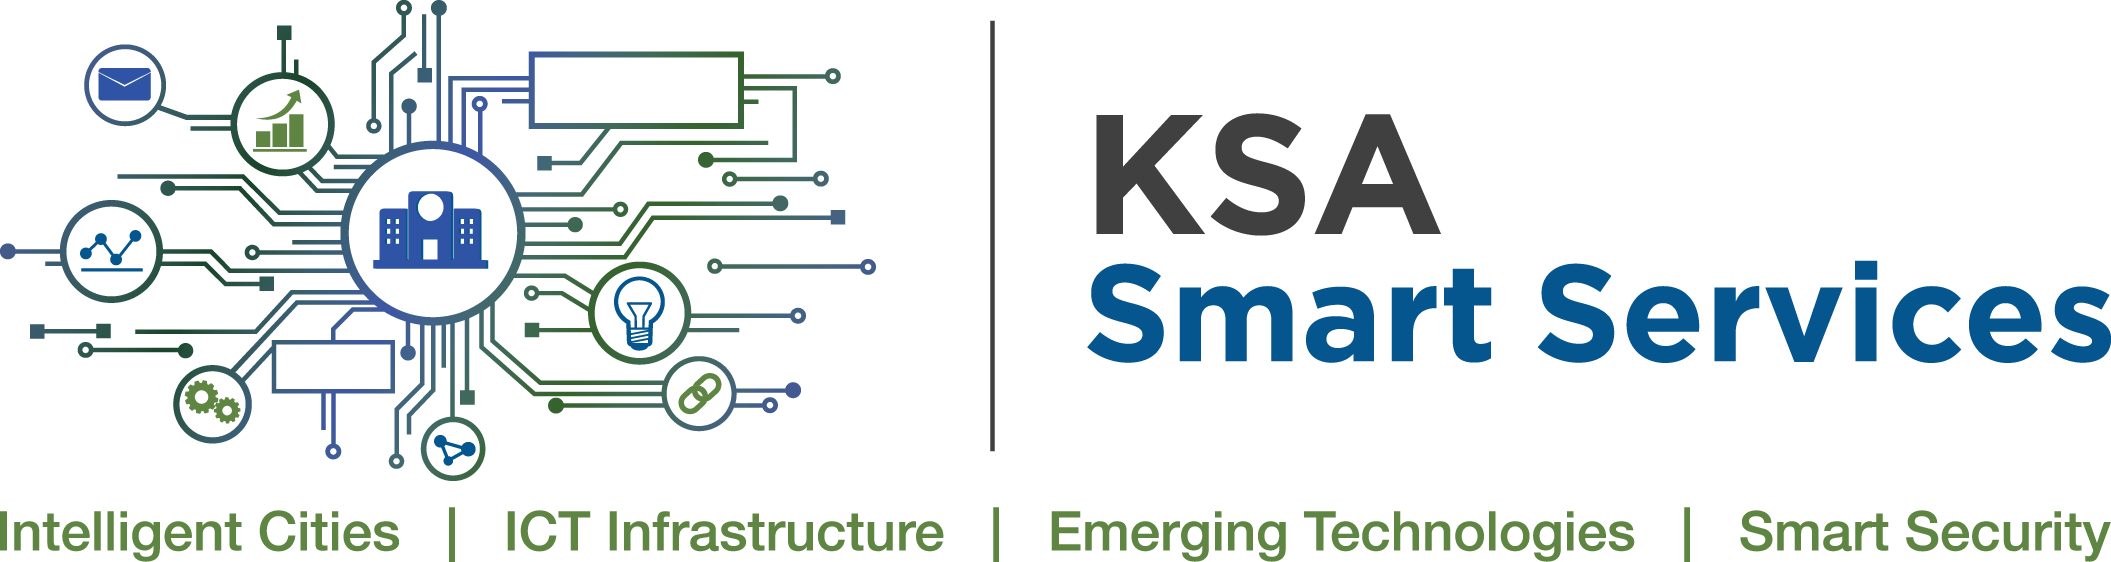 KSA Smart Services & Intelligent Cities Logo